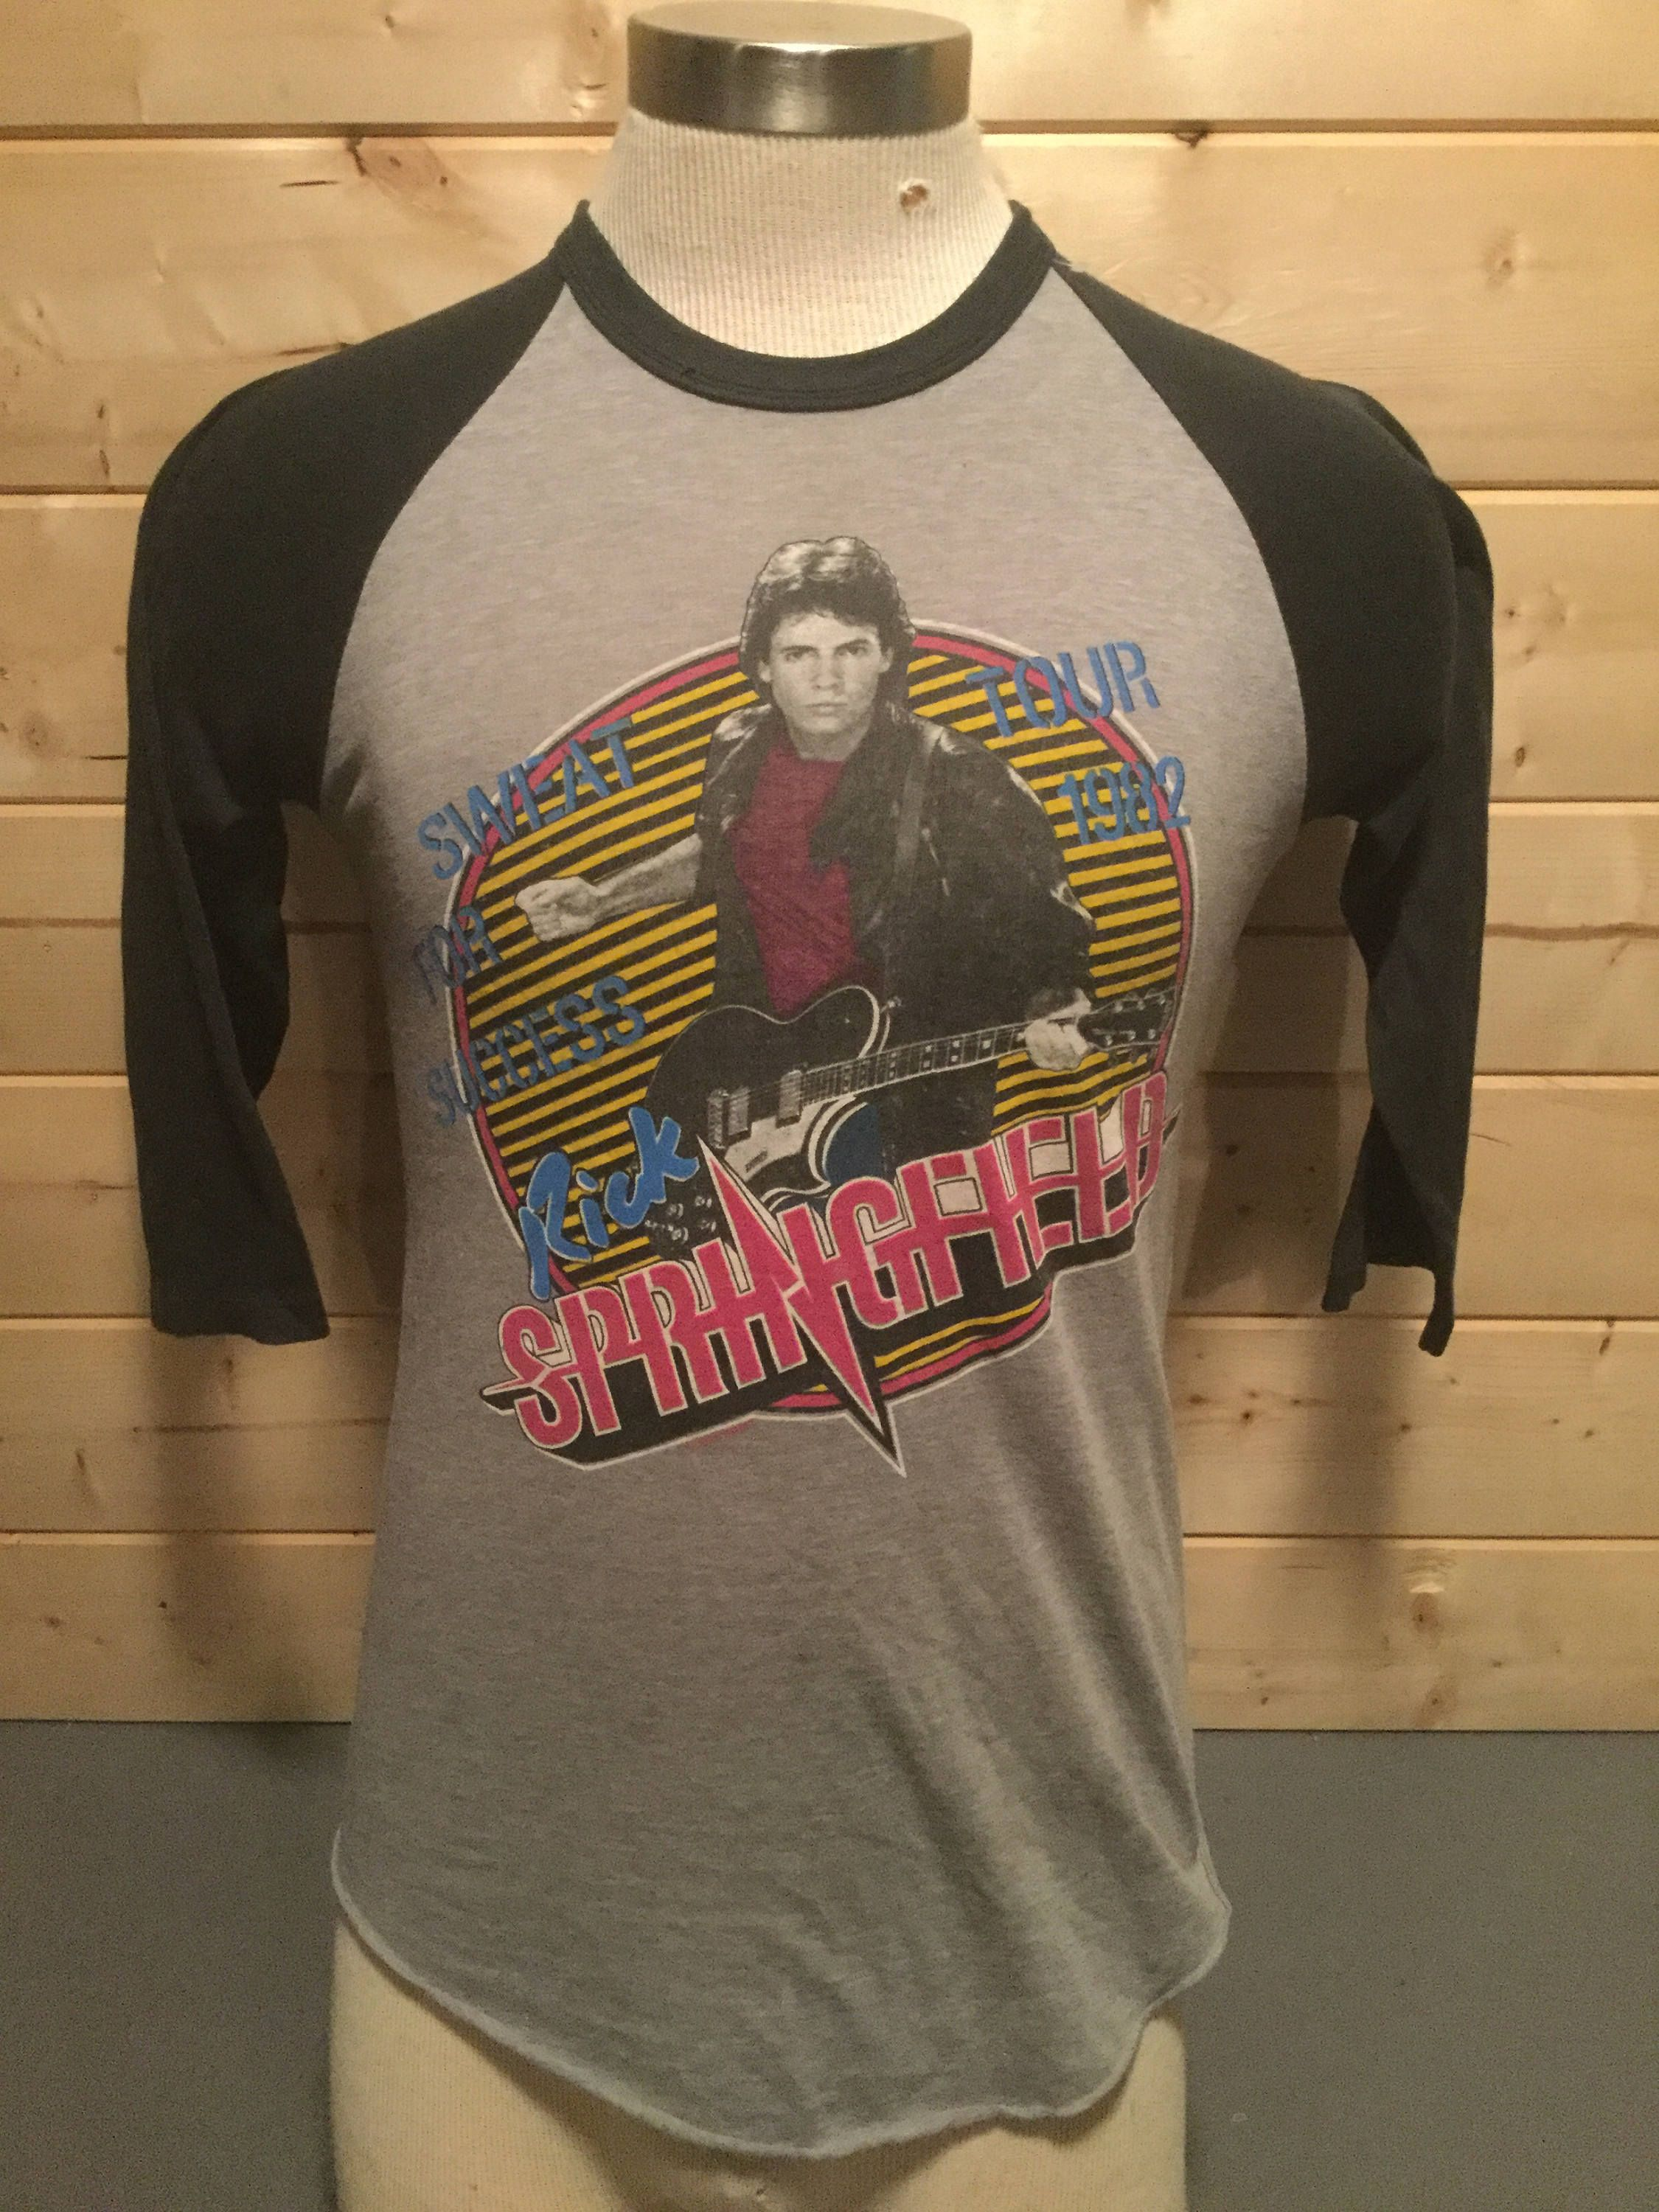 Vintage 1982 Rick Springfield Tour 50 50 Raglan T-Shirt Great Color Made in  USA by 413productions on Etsy 509aeaf58